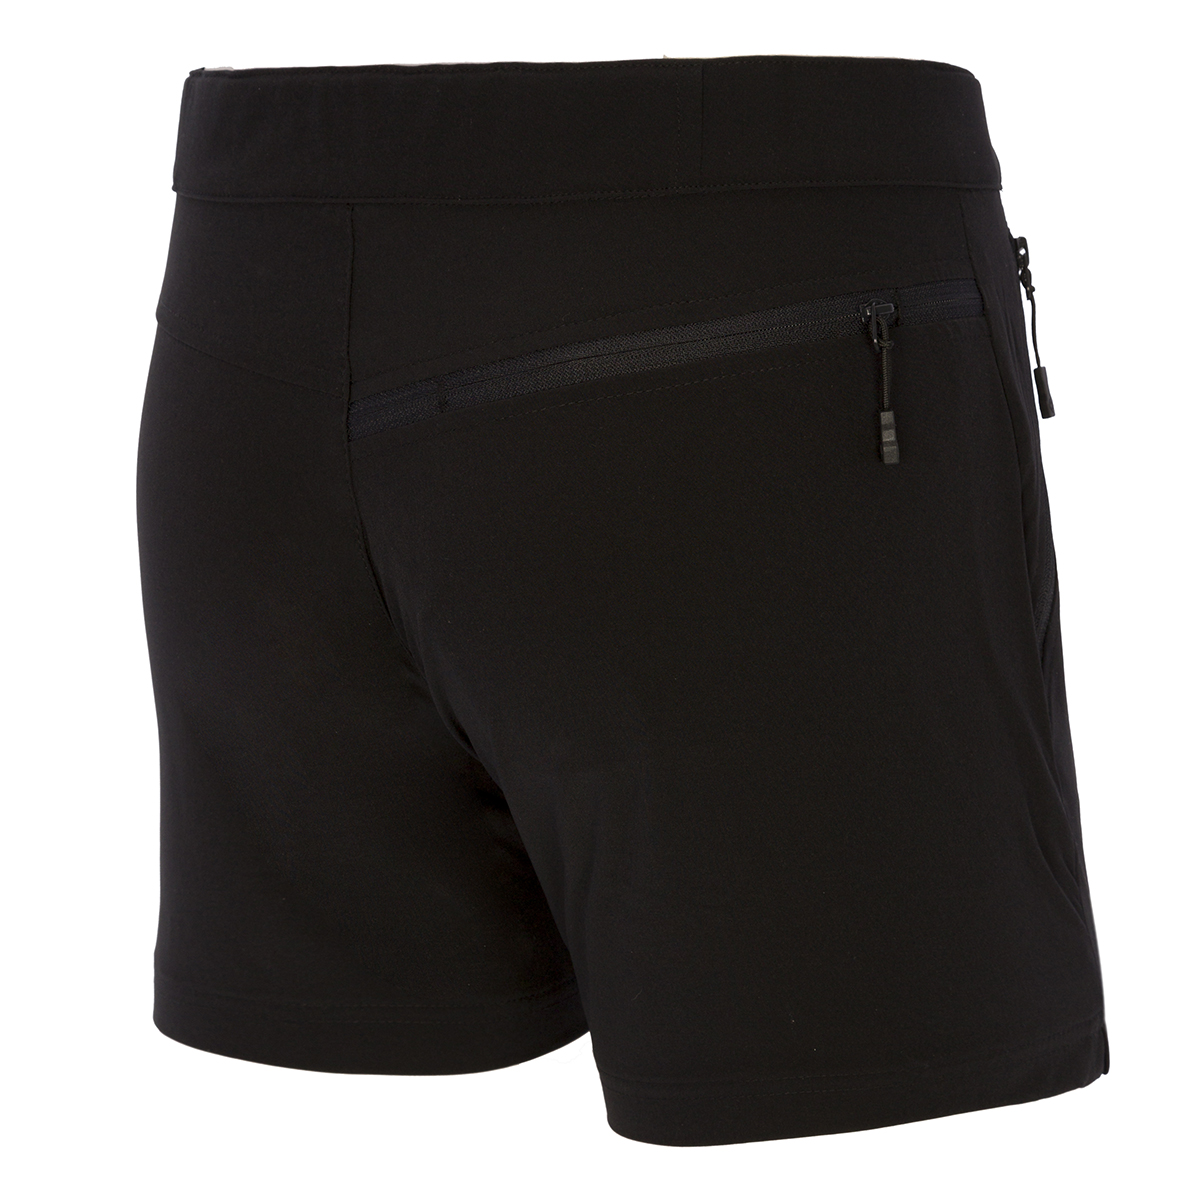 WOMAN'S NAGELA STRETCH SHORT BLACK